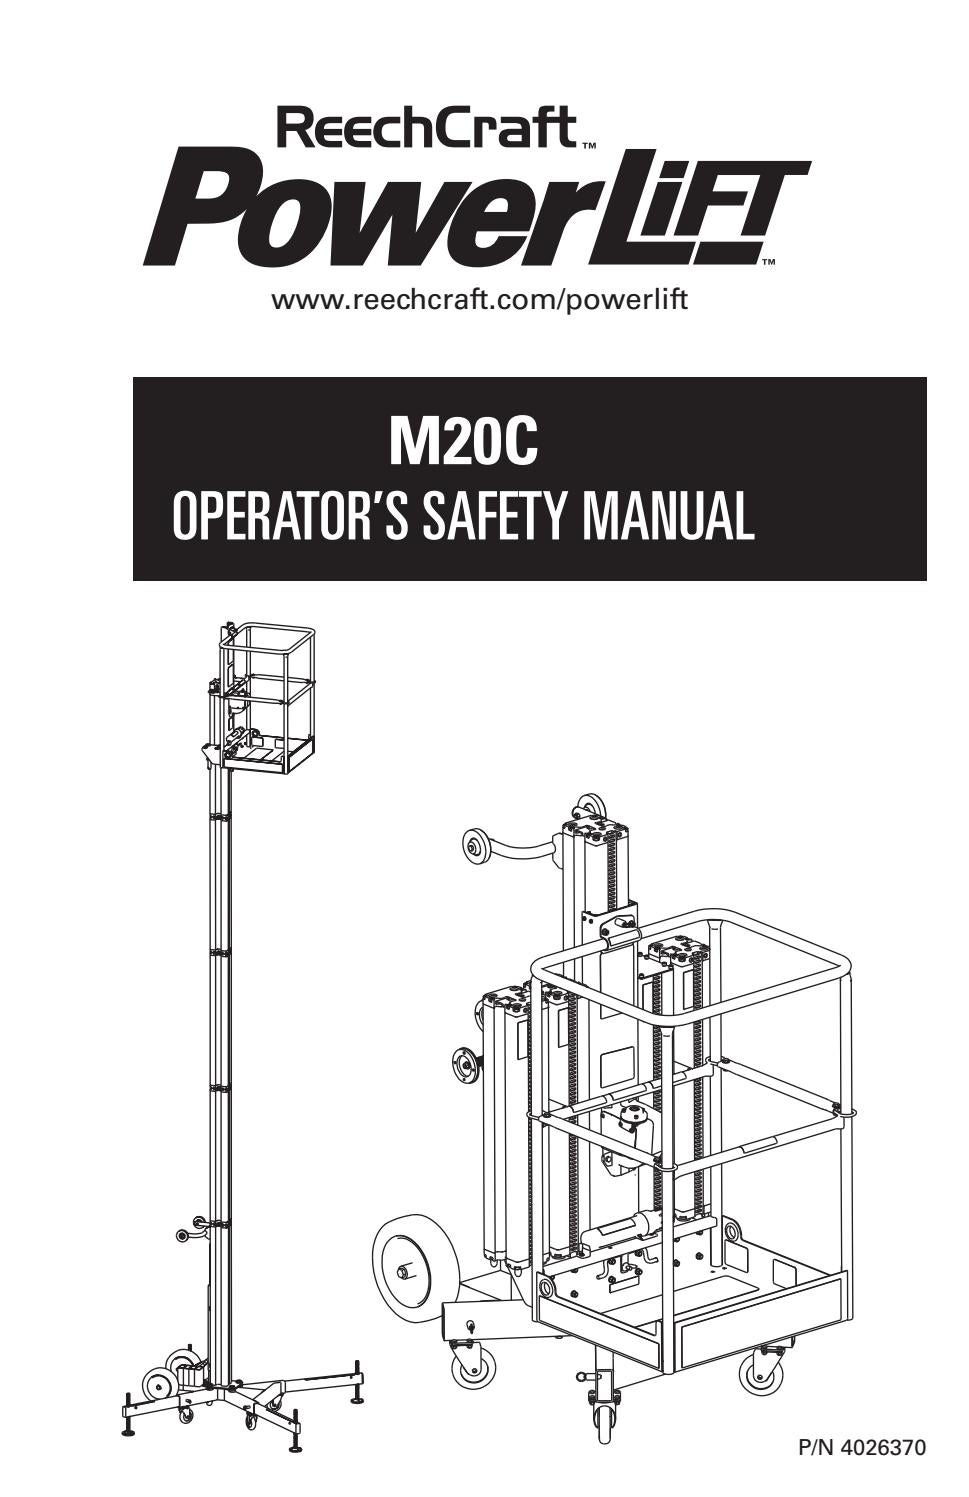 PowerLift M20C Operator's Manual 2015 by ReechCraft Access